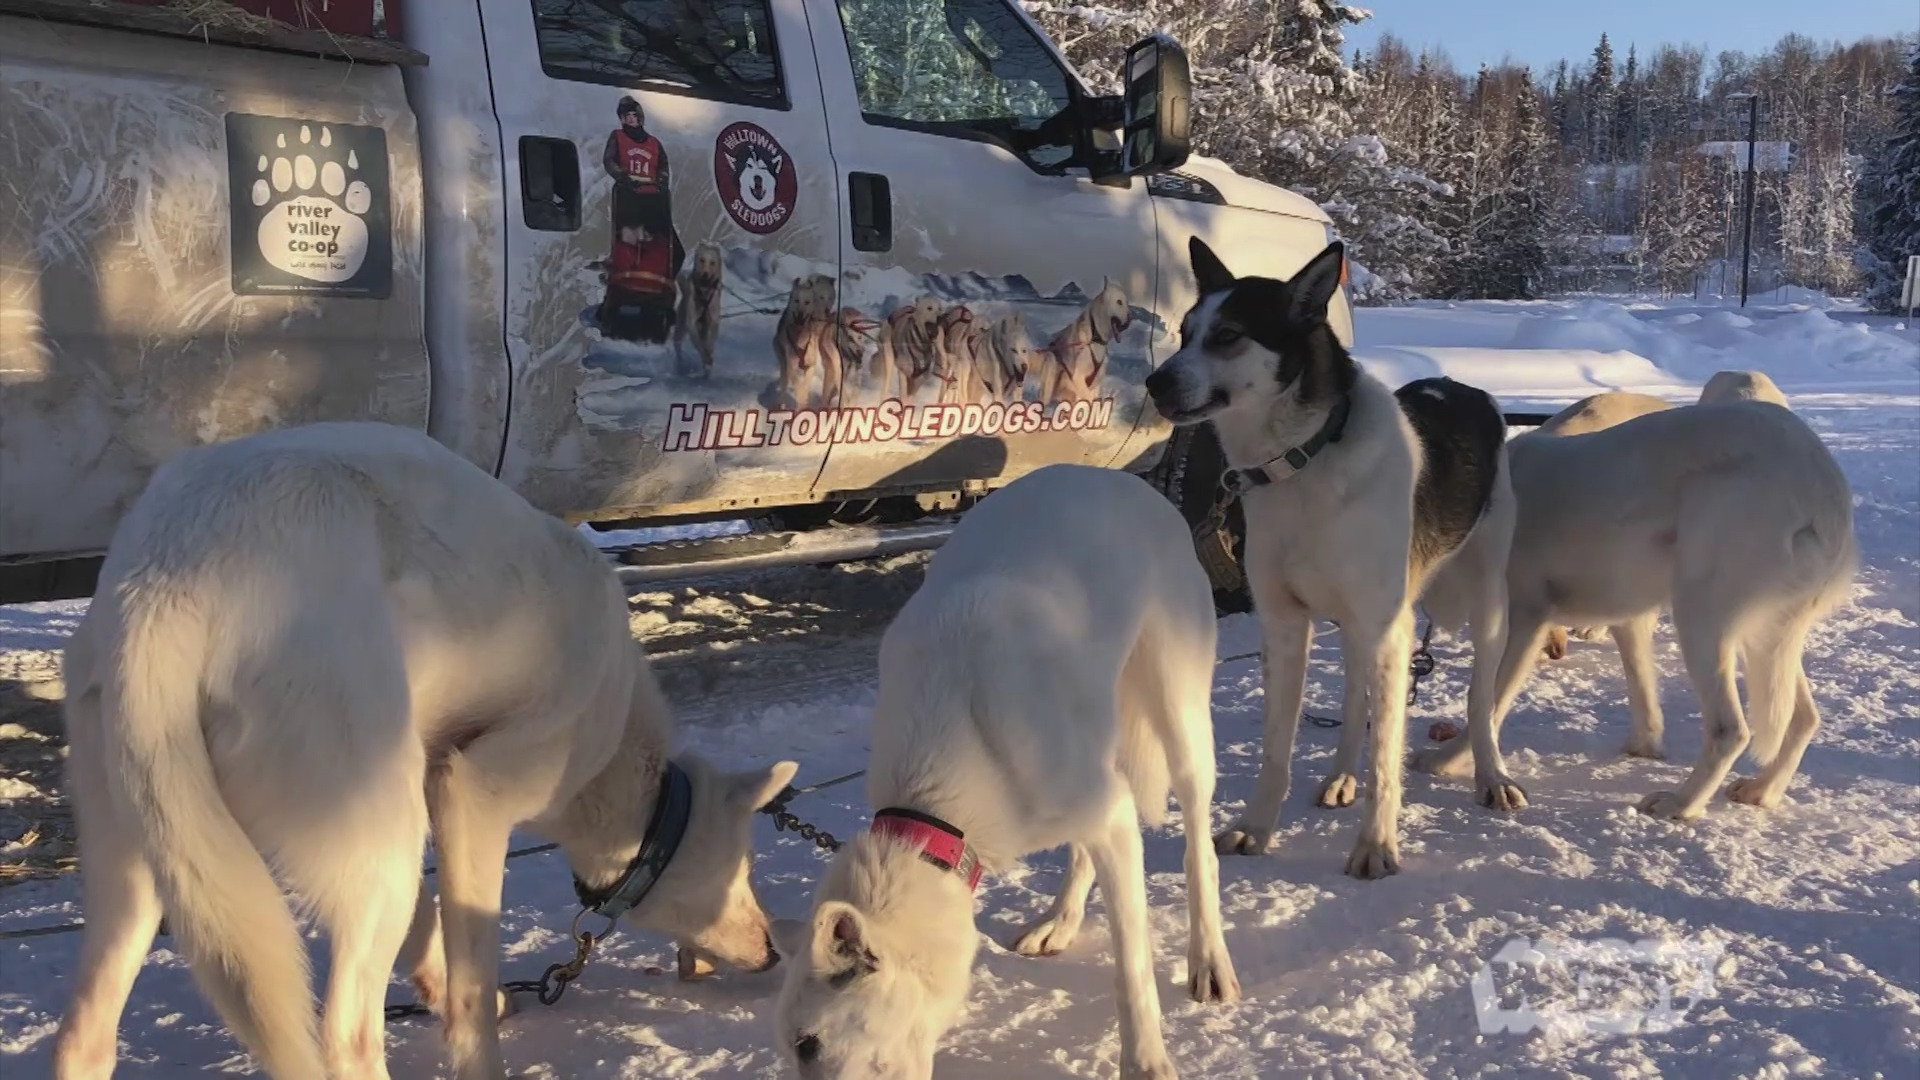 WATCH: Musher Marla Brodsky spent months in Alaska competing in a 700-mile sled dog race, then returned to her hometown in the middle of the pandemic.